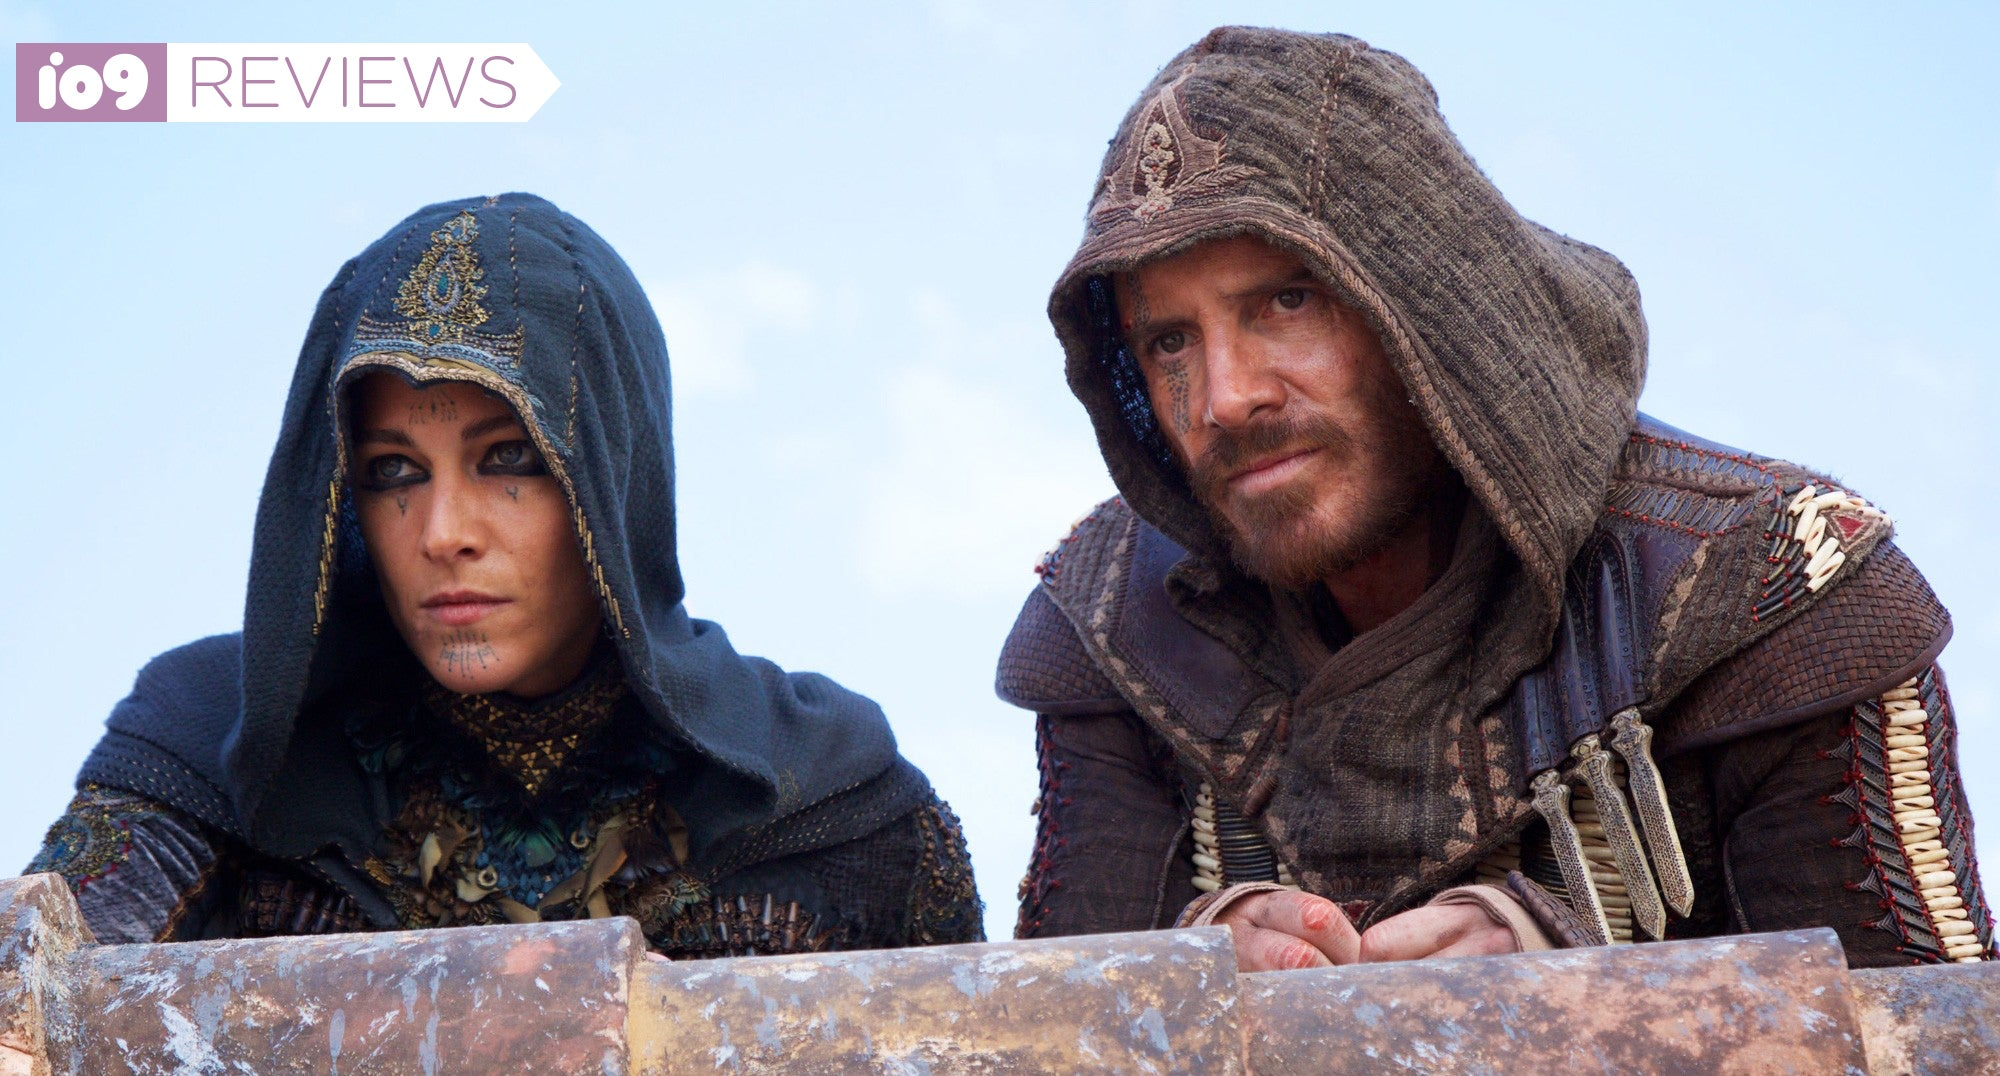 Review: The Assassin's Creed Movie Makes The Same Mistake The Games Do